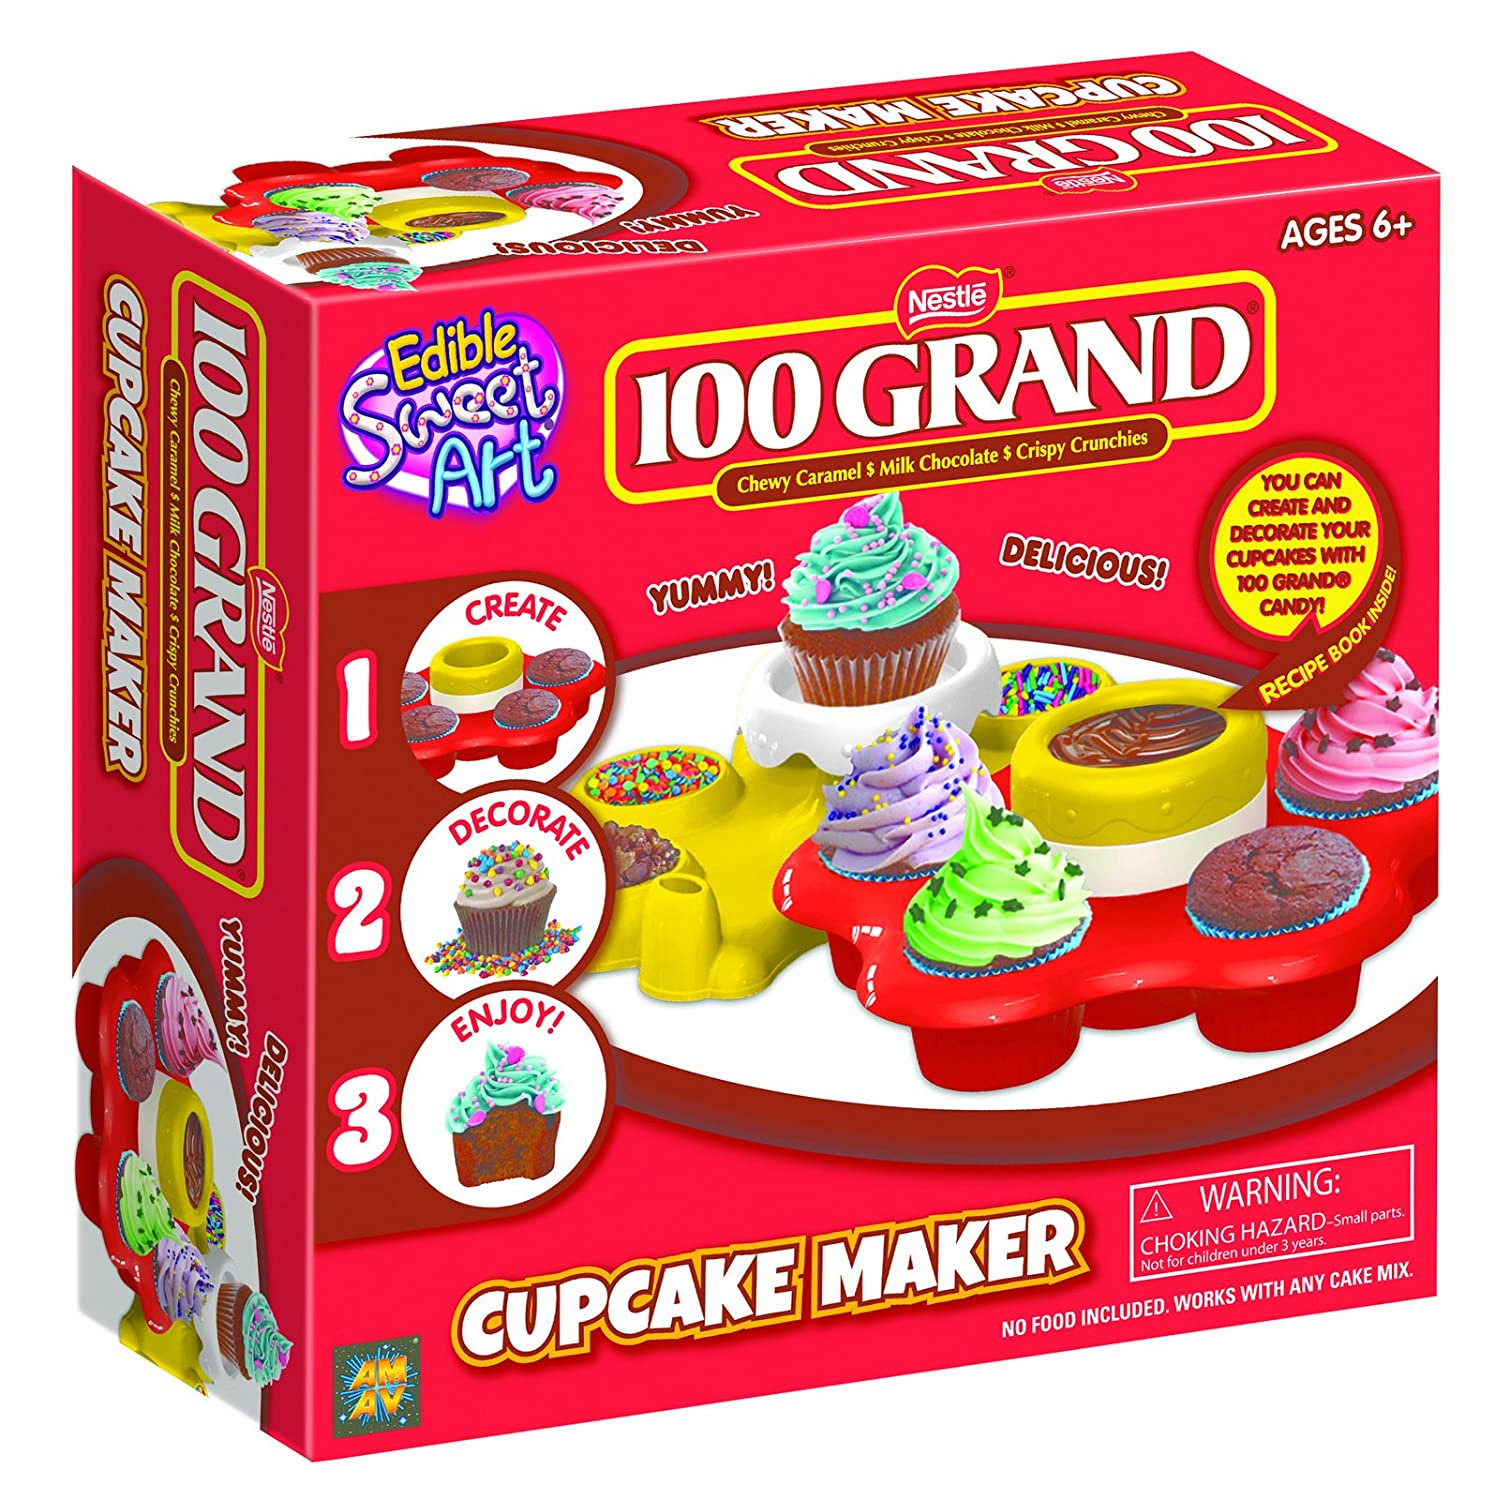 AMAV 100 Grand Cupcake Maker Toy Activity Set Using Microwave Baking - DIY Make Your Own Delicious Treat - Edible Sweet Art